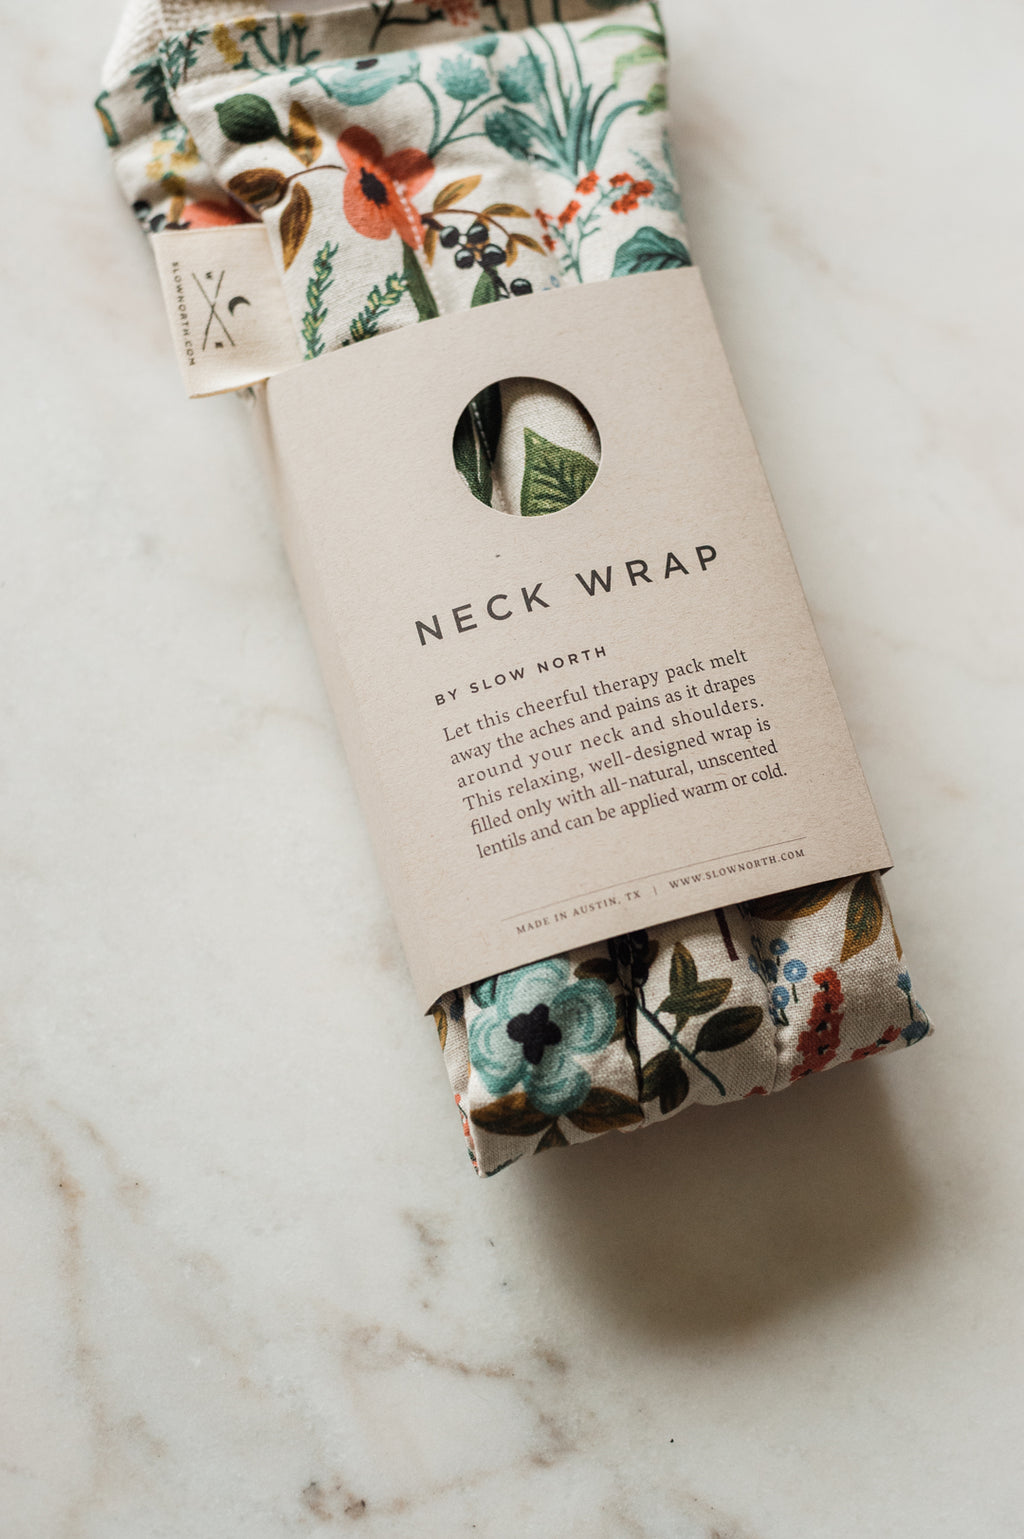 Wildflower Neck Wrap by Slow North